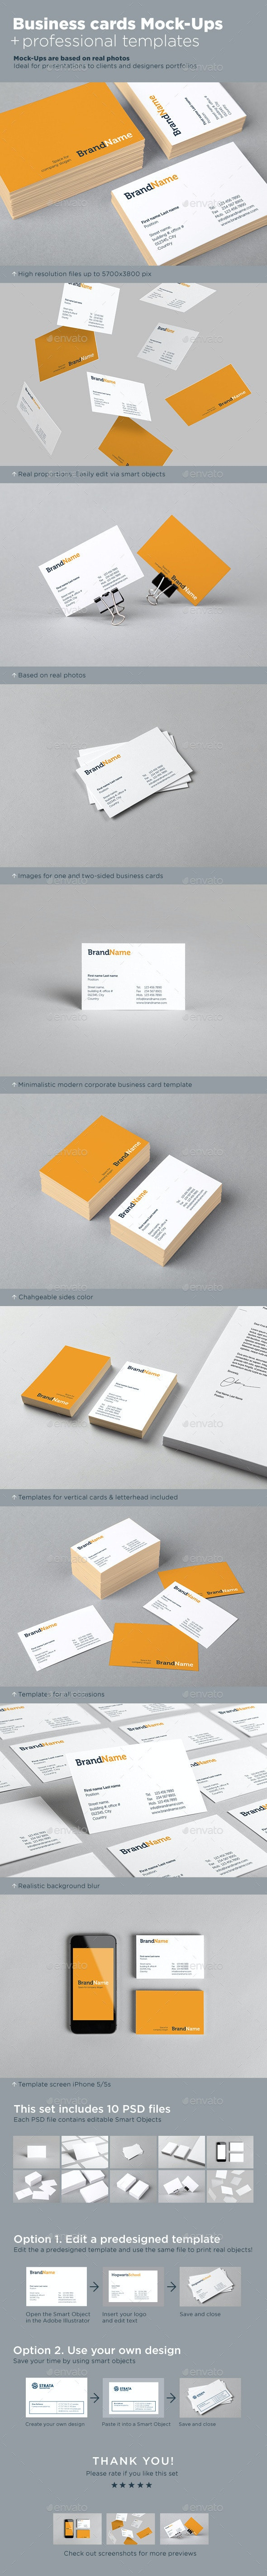 Business Cards Mock-Ups + Template - Business Cards Print